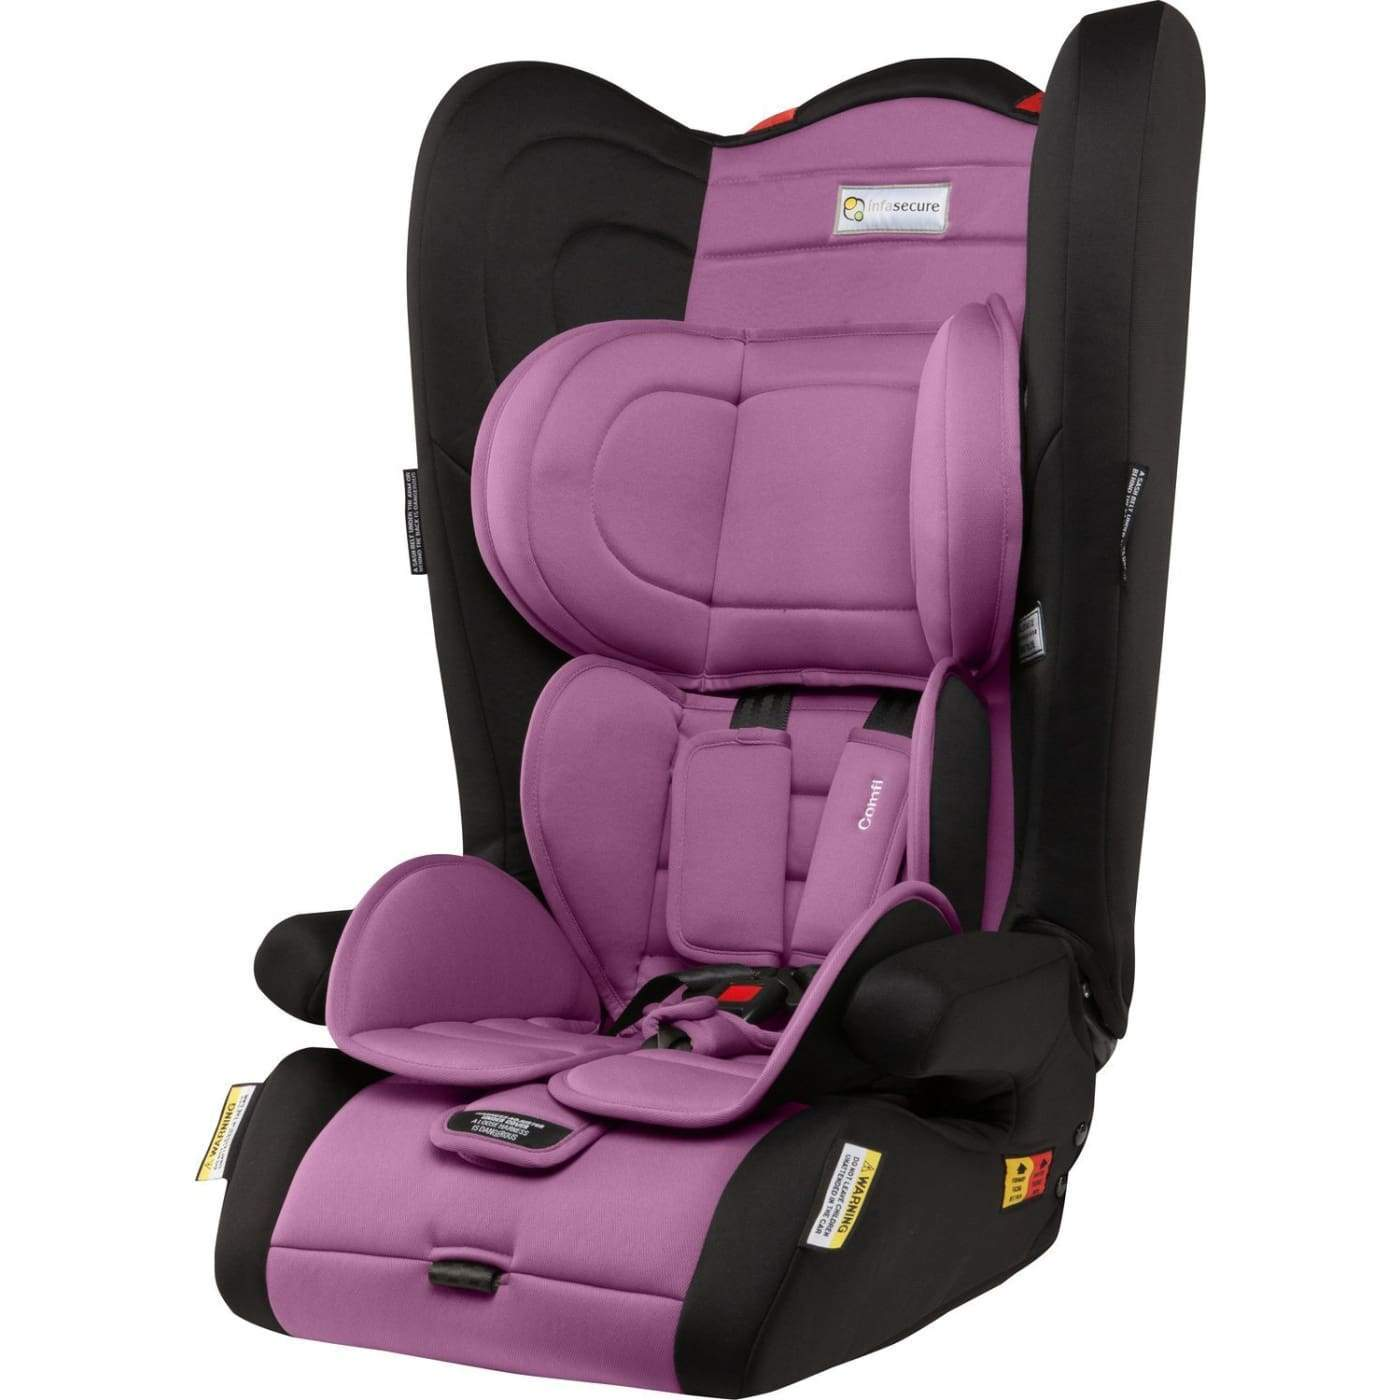 InfaSecure Astra Comfi Convertible Booster 6M-8YR - Purple - CAR SEATS - CONV BOOSTERS (6M-8YR)